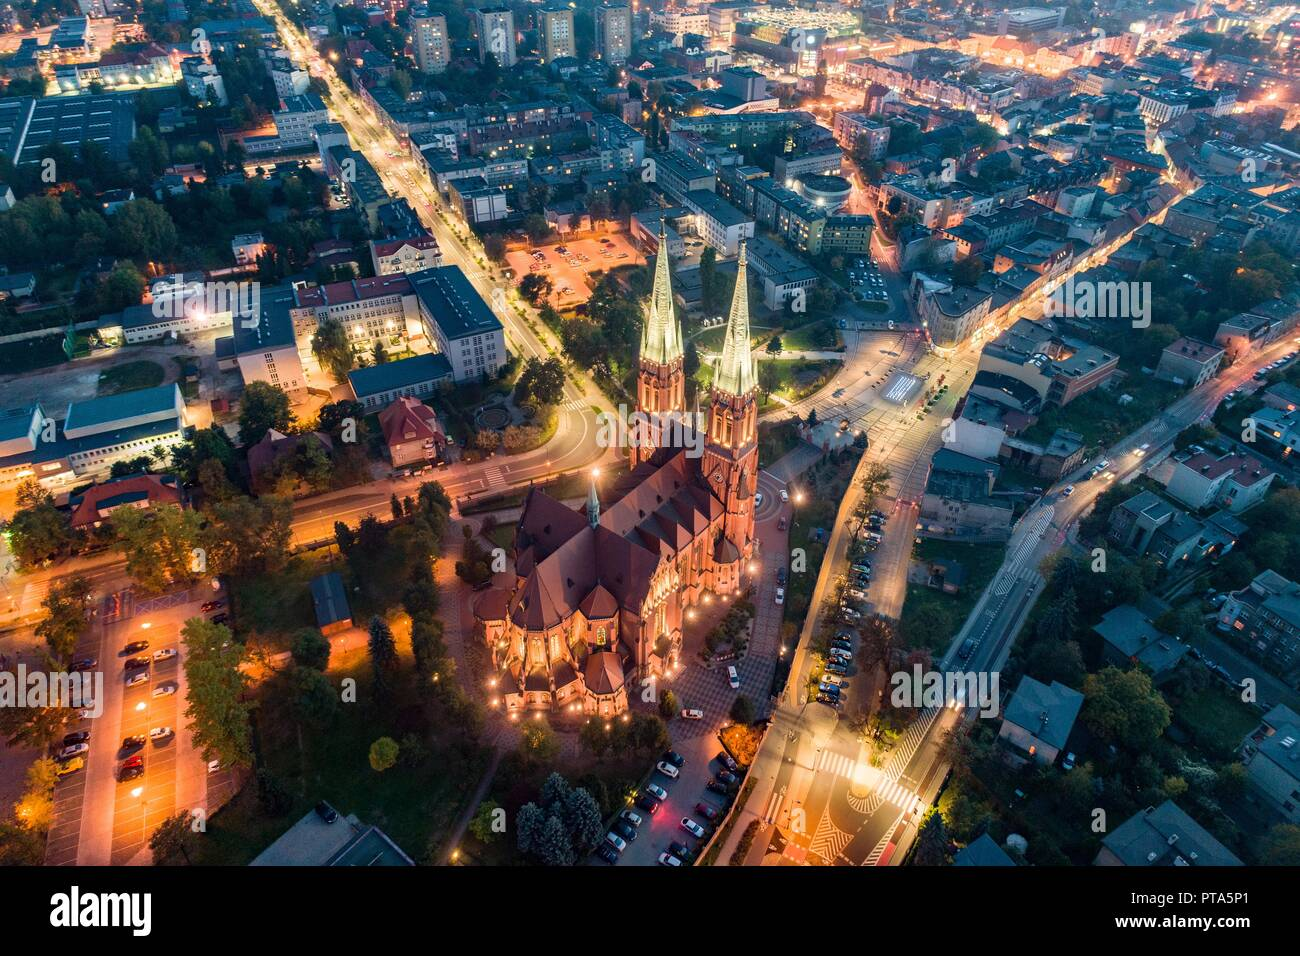 Aerial drone view on Basilica and city center in Rybnik. Rybnik is a city in southwestern Poland, in the Silesian Voivodeship. - Stock Image